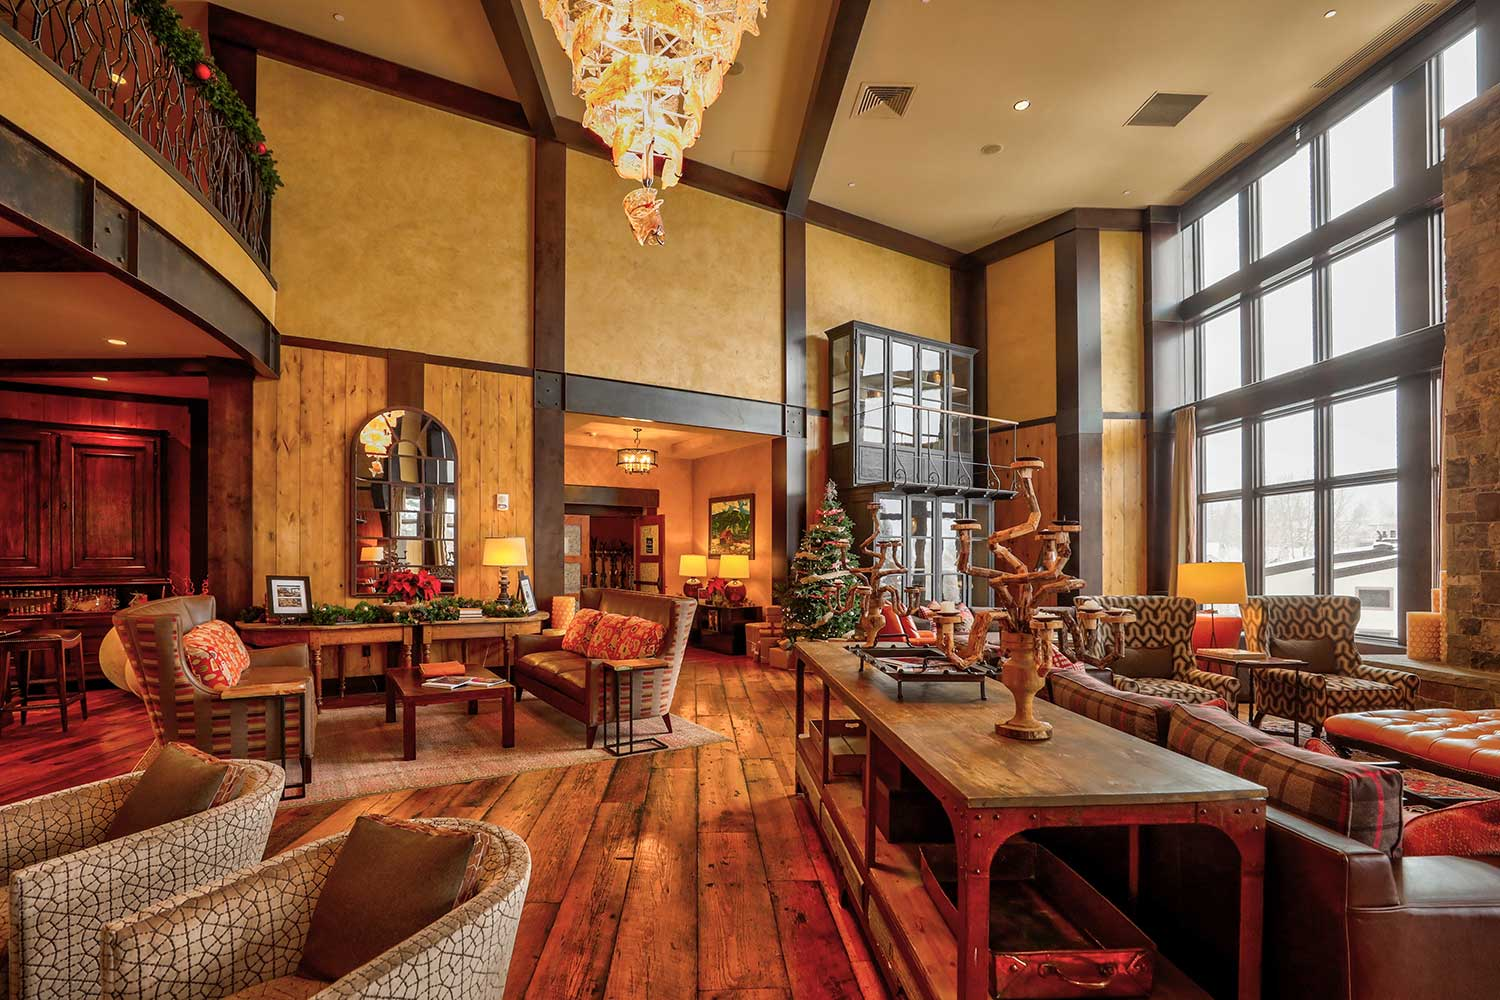 3 things you didnt know 1 - 3 Things You Didn't Know About Alpine Mountain Summit Club